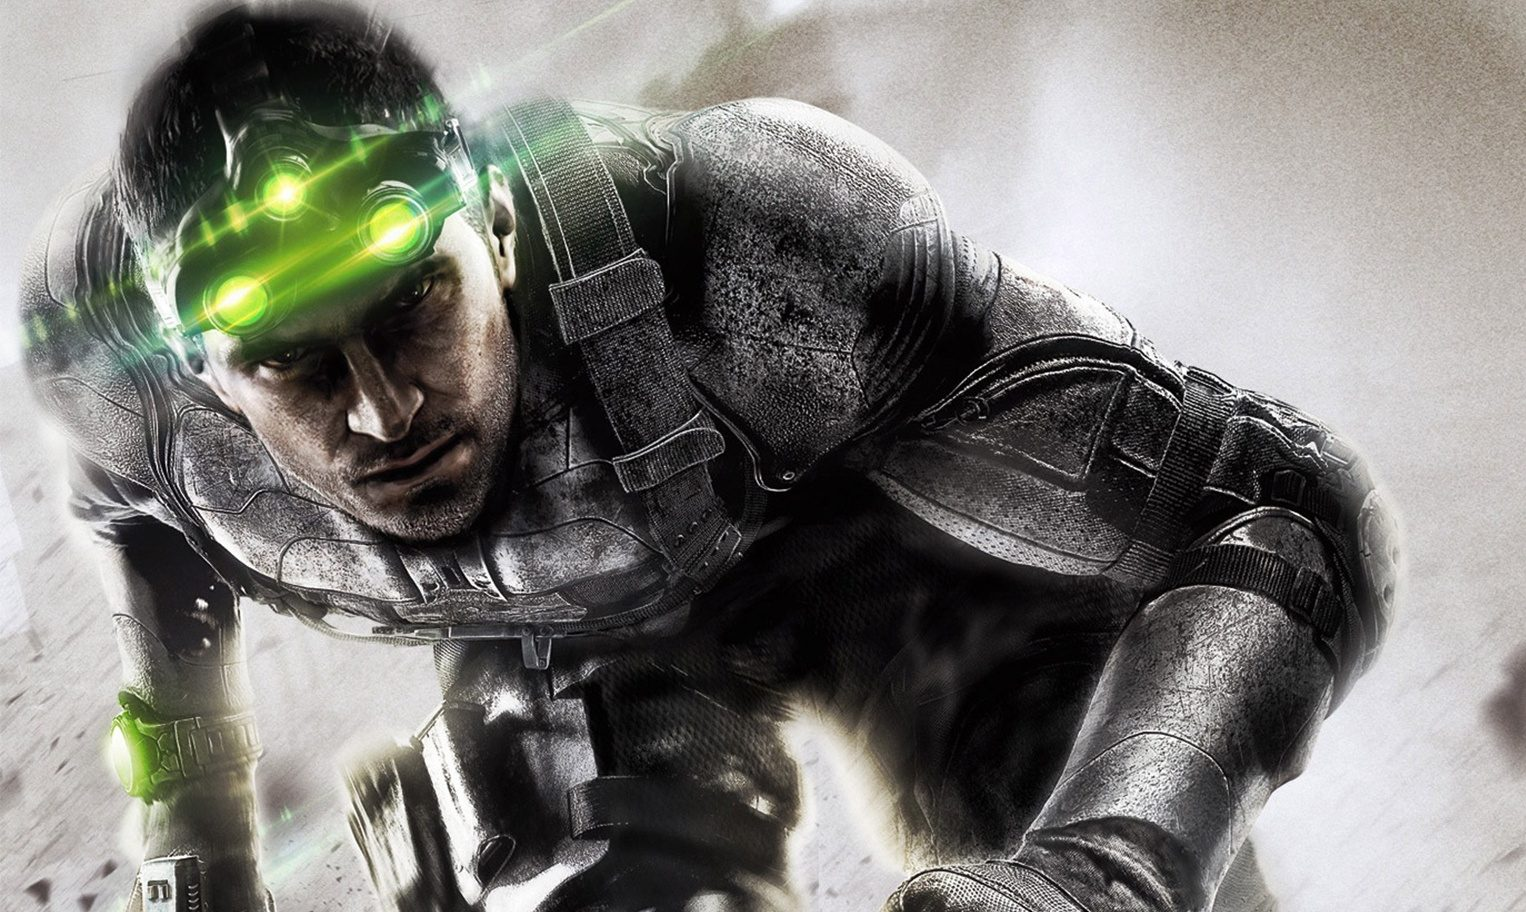 new splinter cell featuring ironside as sam fisher allegedly in